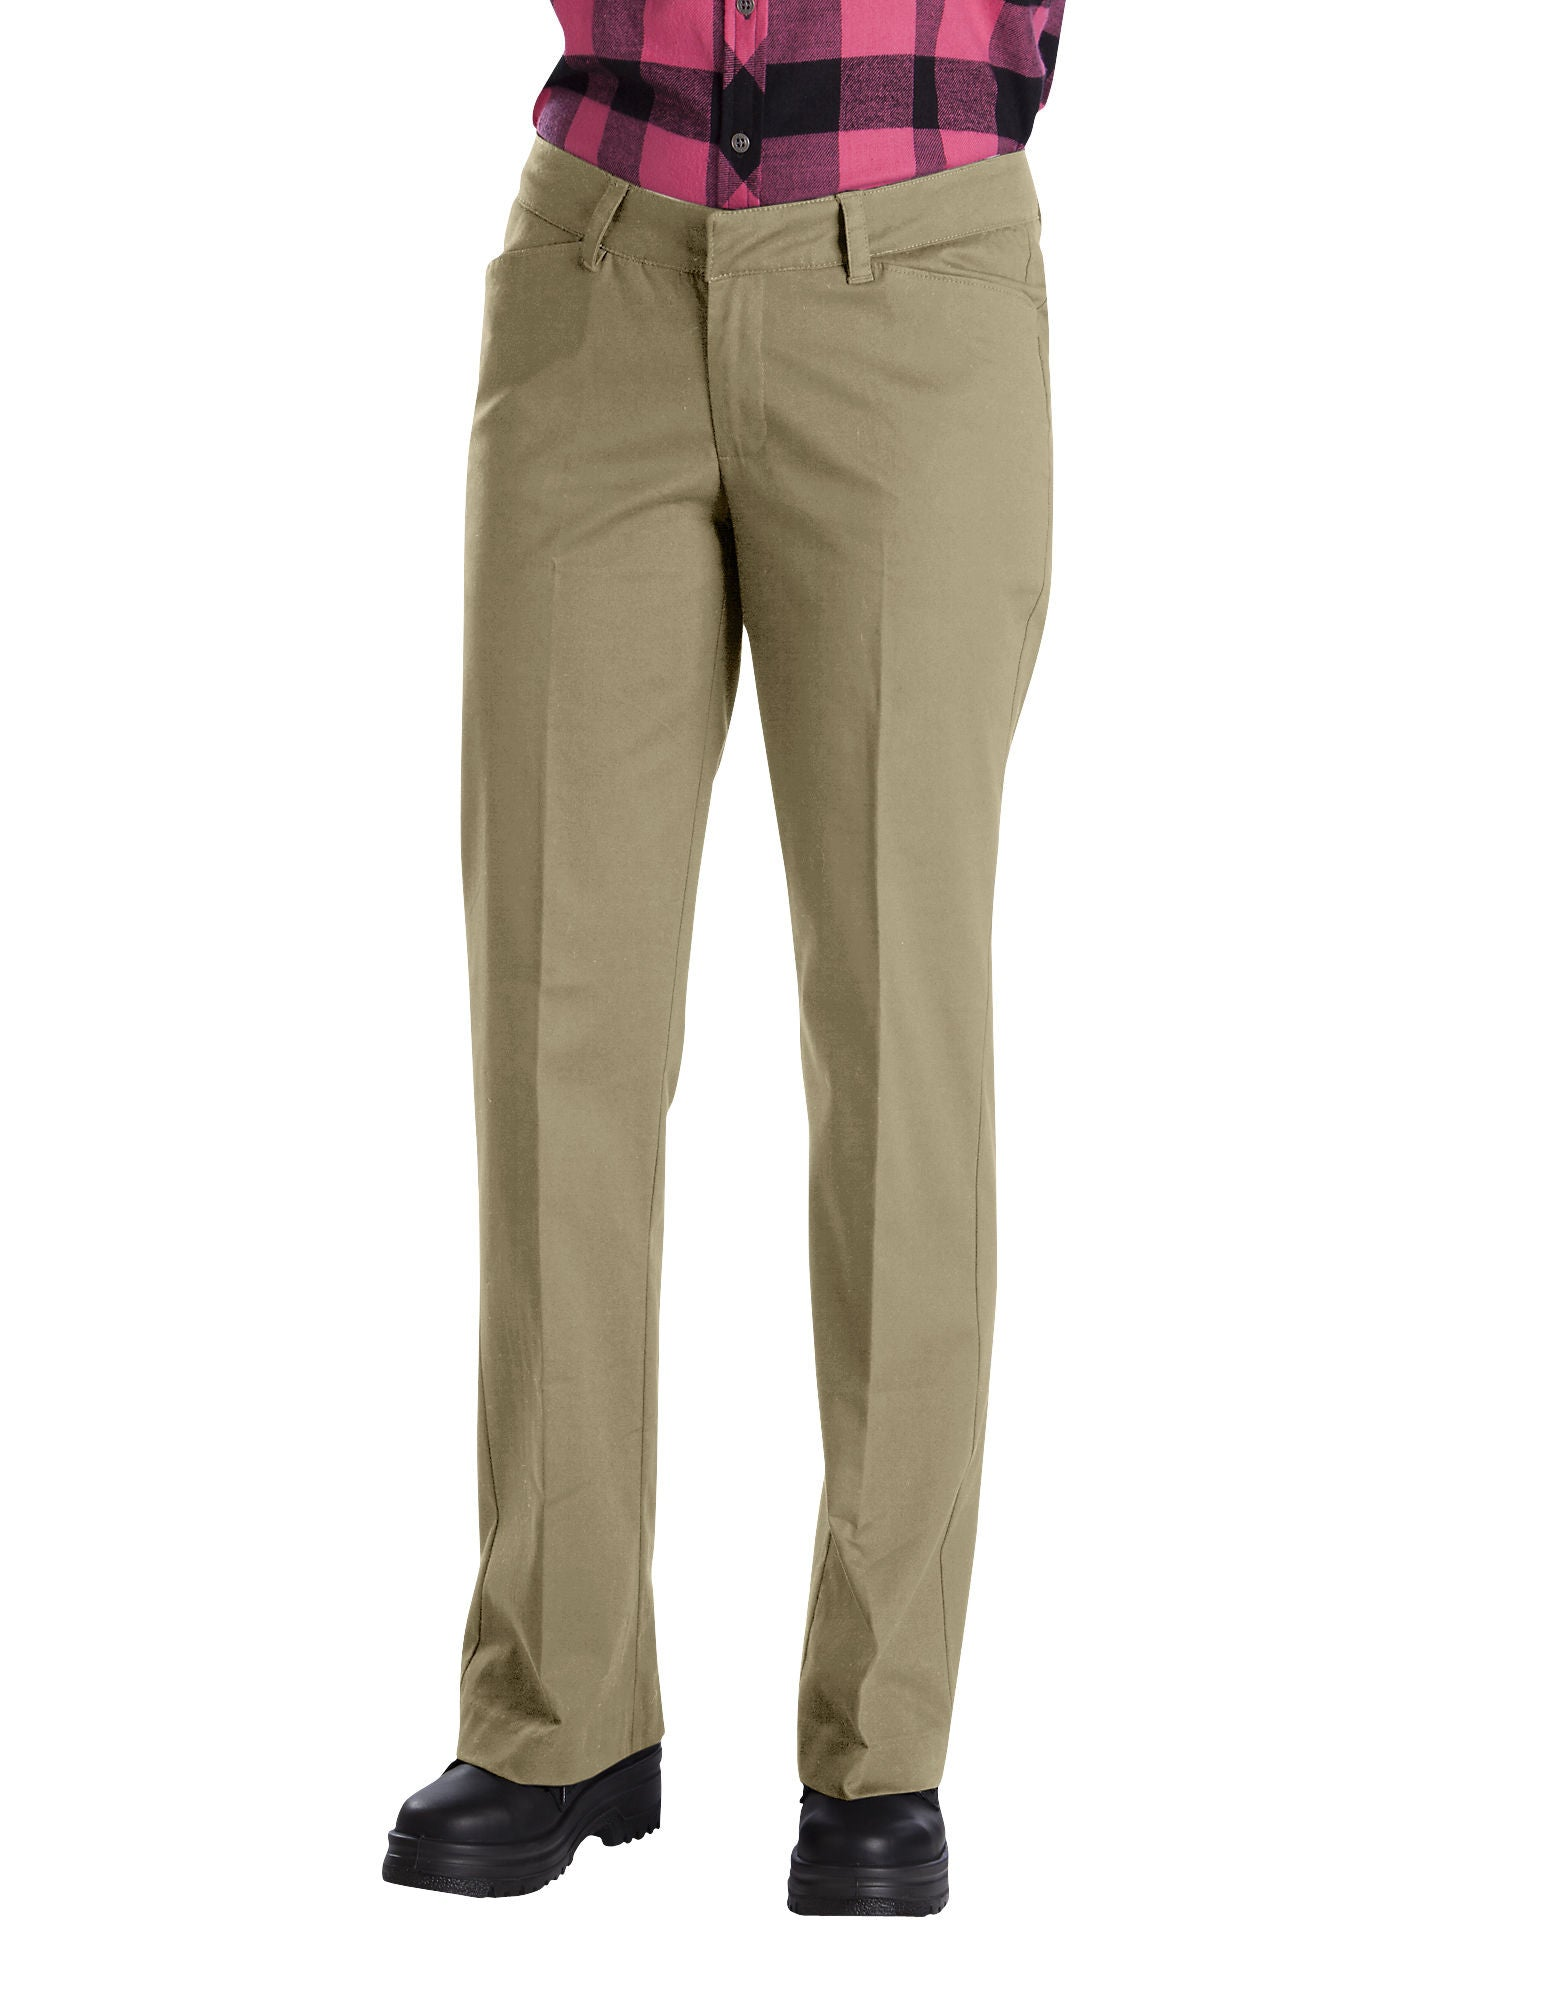 9dcdd15c8be Dickies - Women s Relaxed Straight Stretch Twill Pant – ValueMaxx